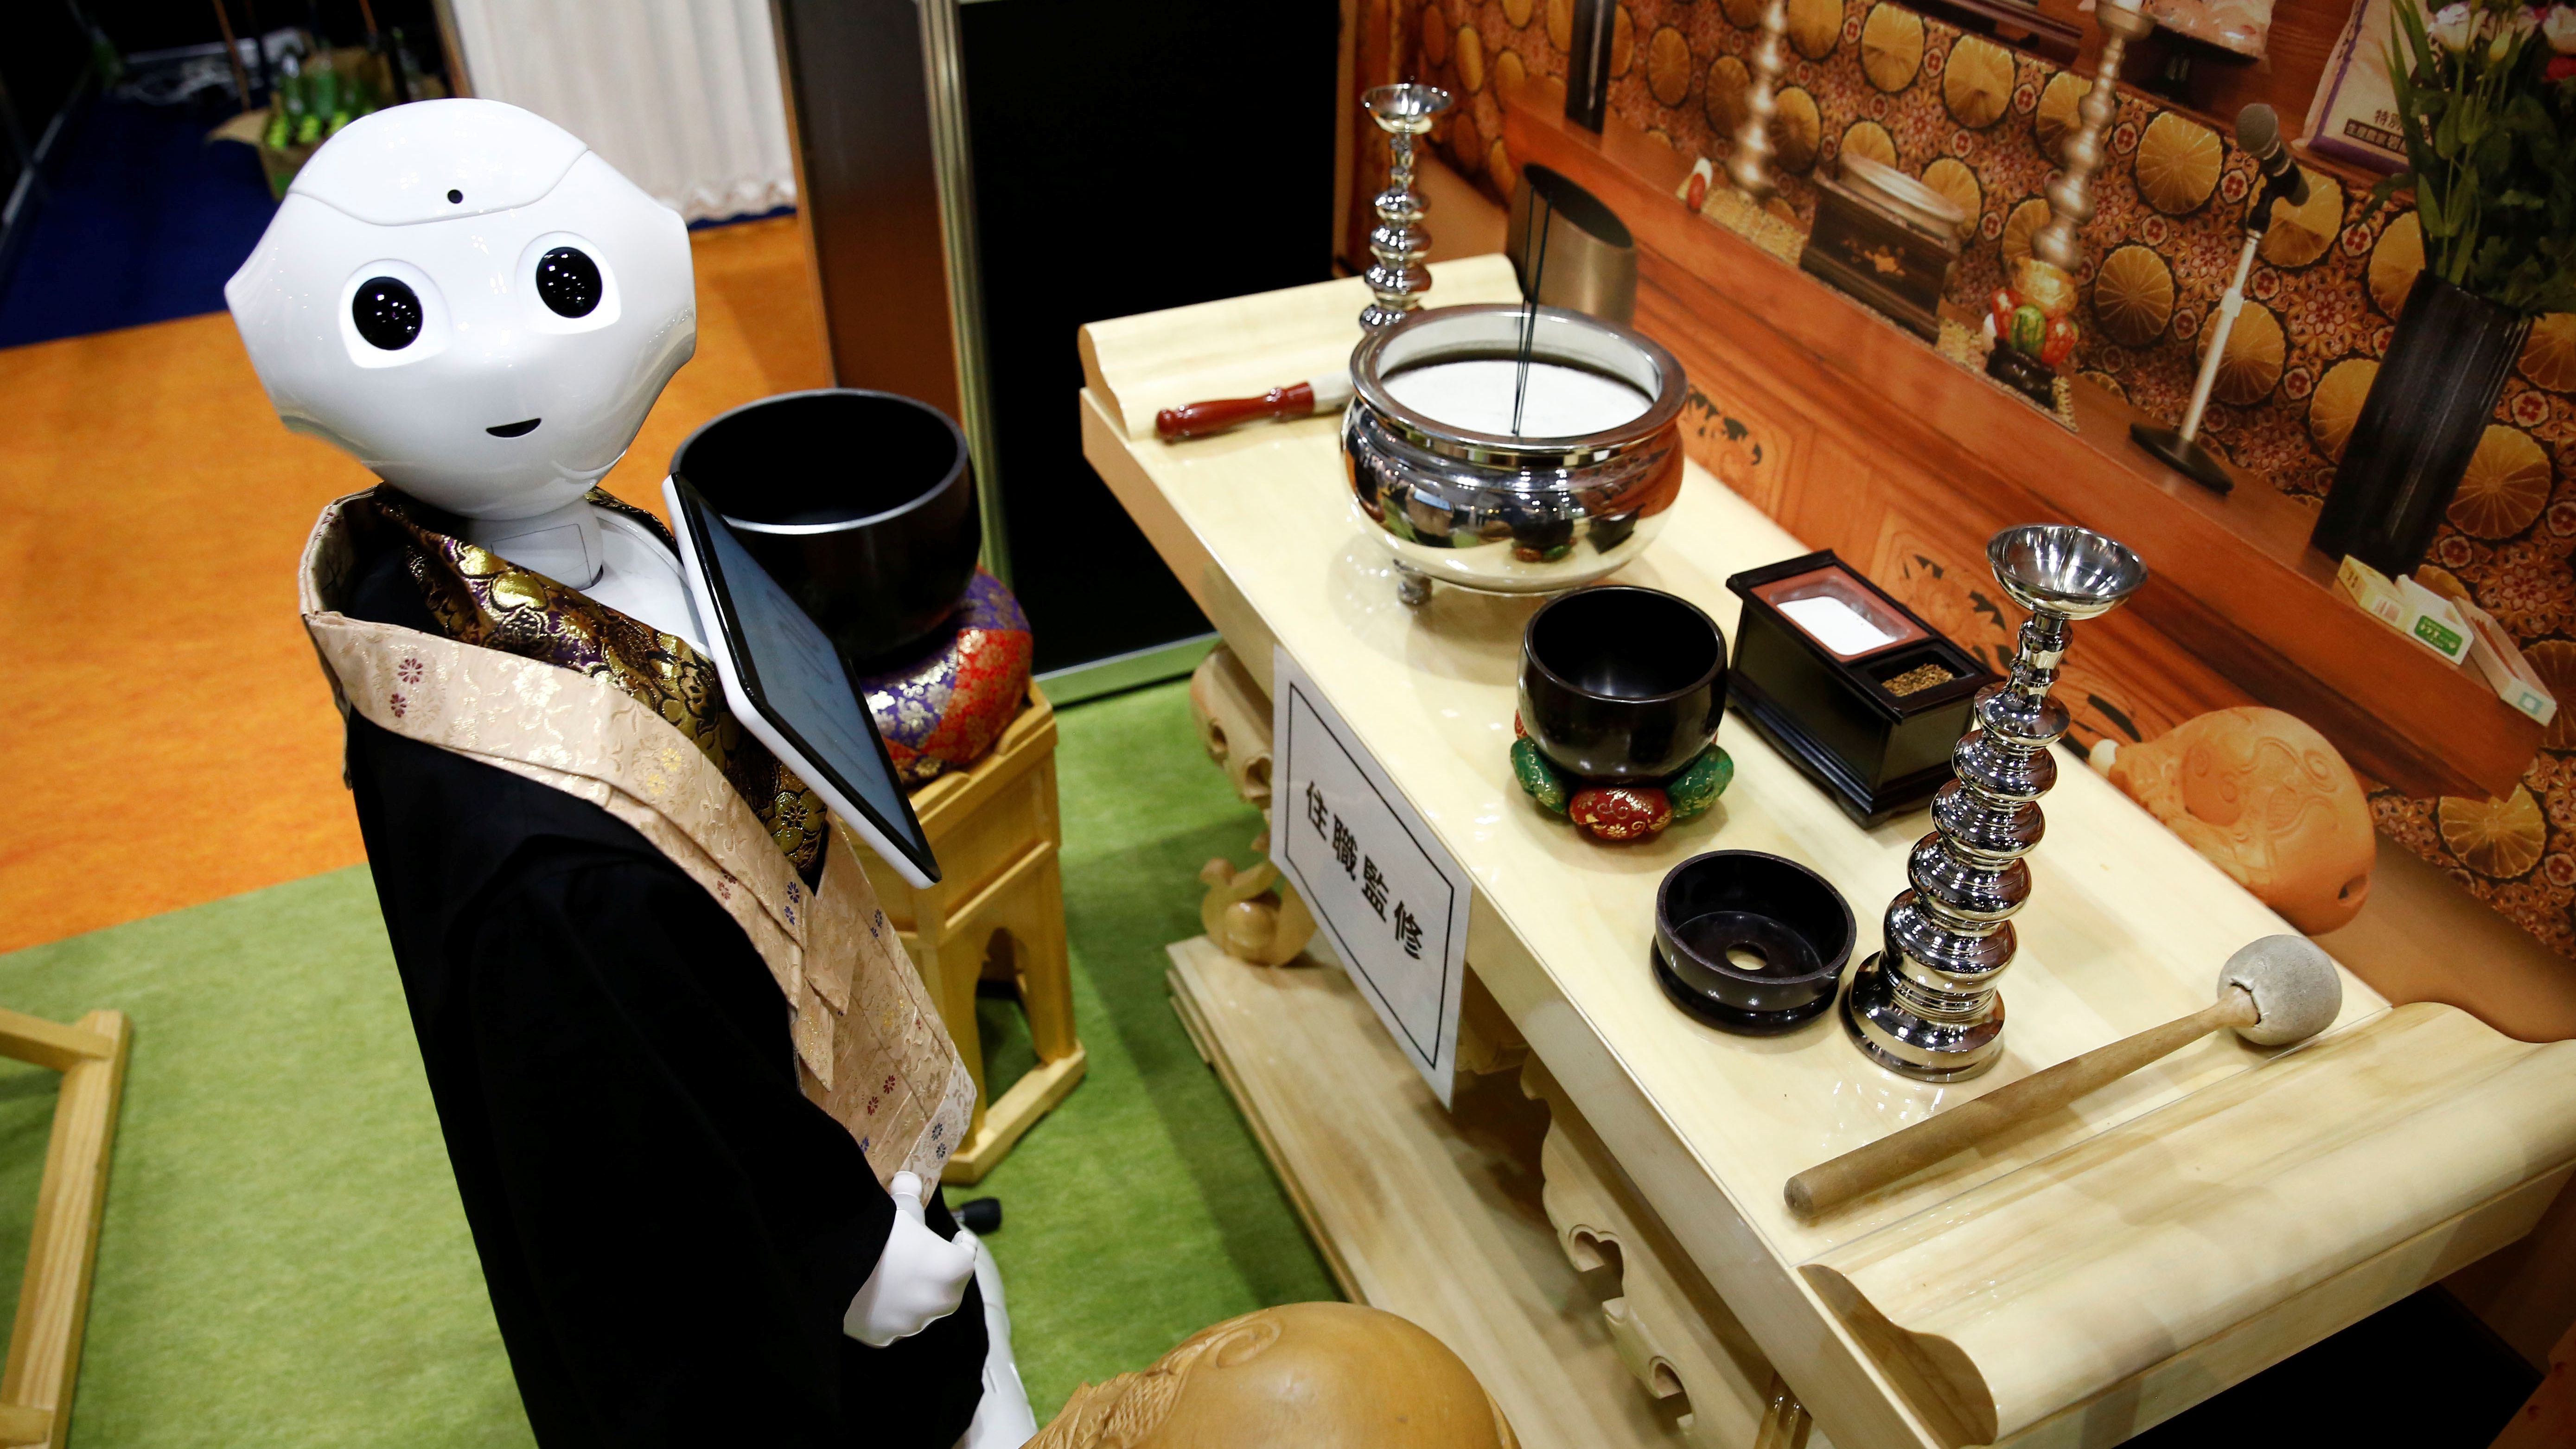 Are Robot Priests Really The Future Of Funerals?